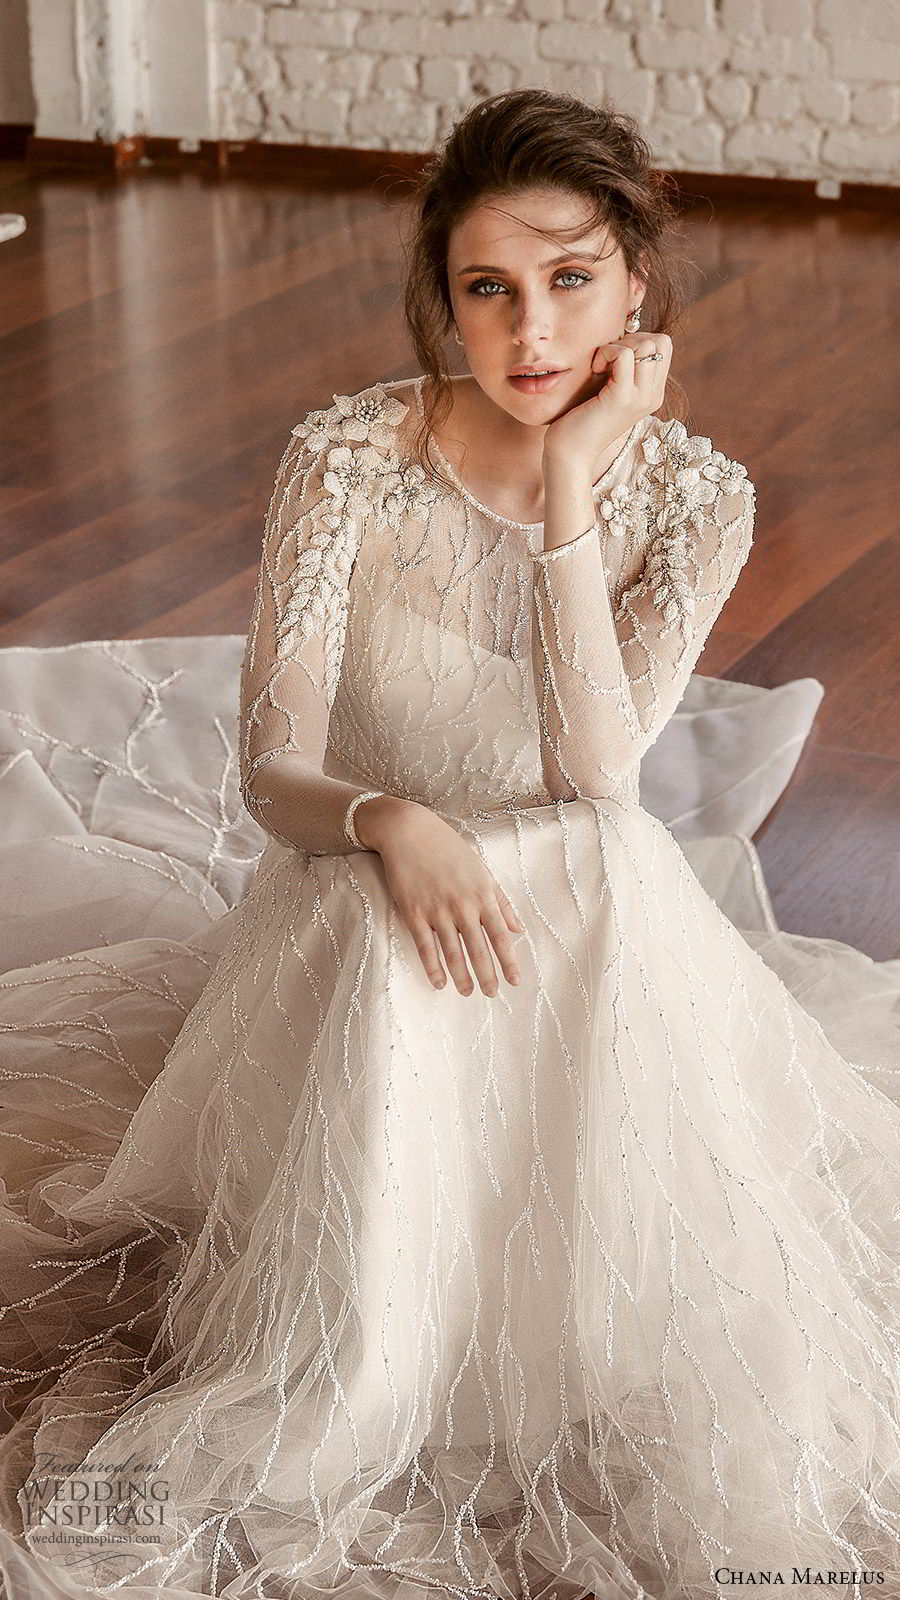 chana marelus fall 2019 bridal illusion long sleeves sheer jewel neck semi sweetheart neckline fully embellished a line ball gown wedding dress (2) elegant romantic chapel train zv